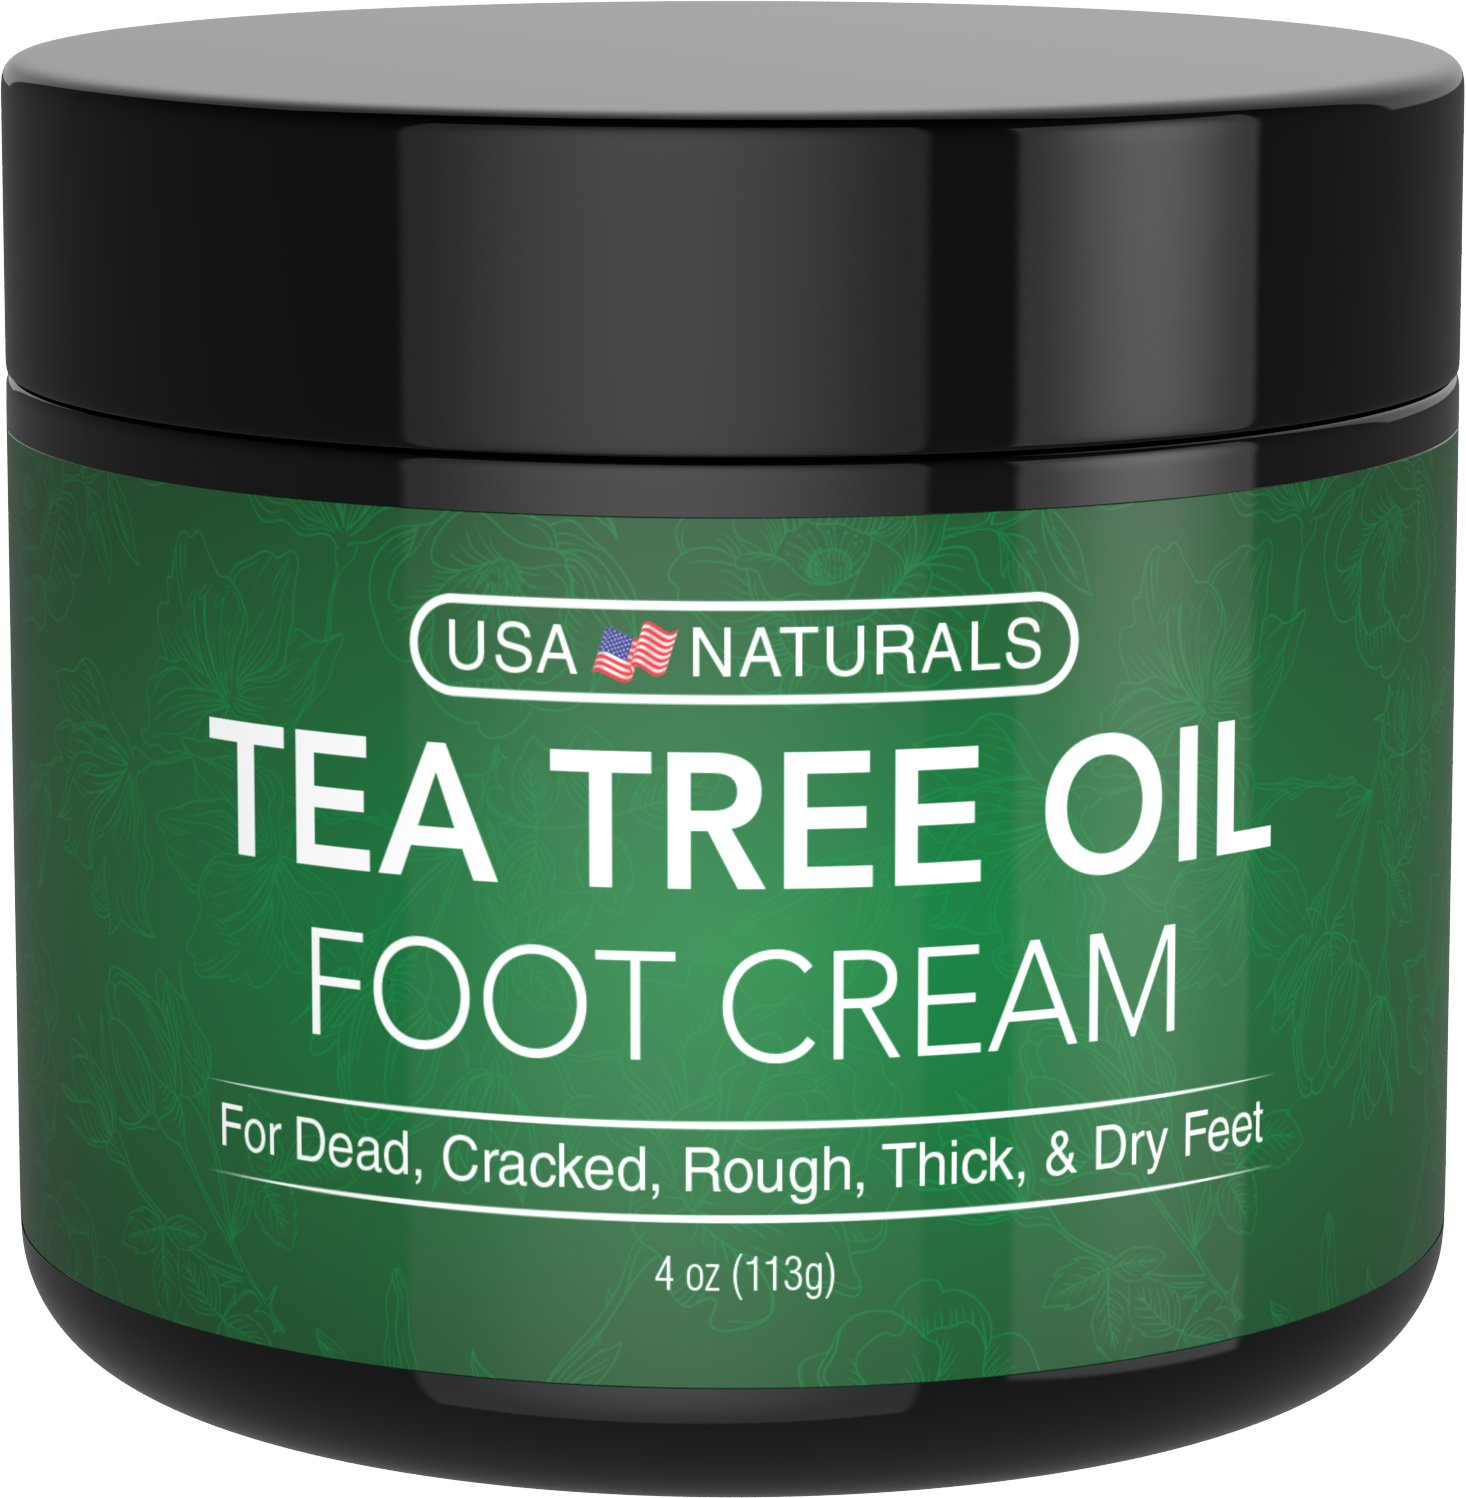 Tea Tree Oil Foot Cream - Instantly Hydrates and Moisturizes Cracked or Callused Feet - Rapid Relief Heel Cream - Antifungal Treatment Helps & Soothes Irritated Skin, Athletes Foot, Body Acne by USA Naturals